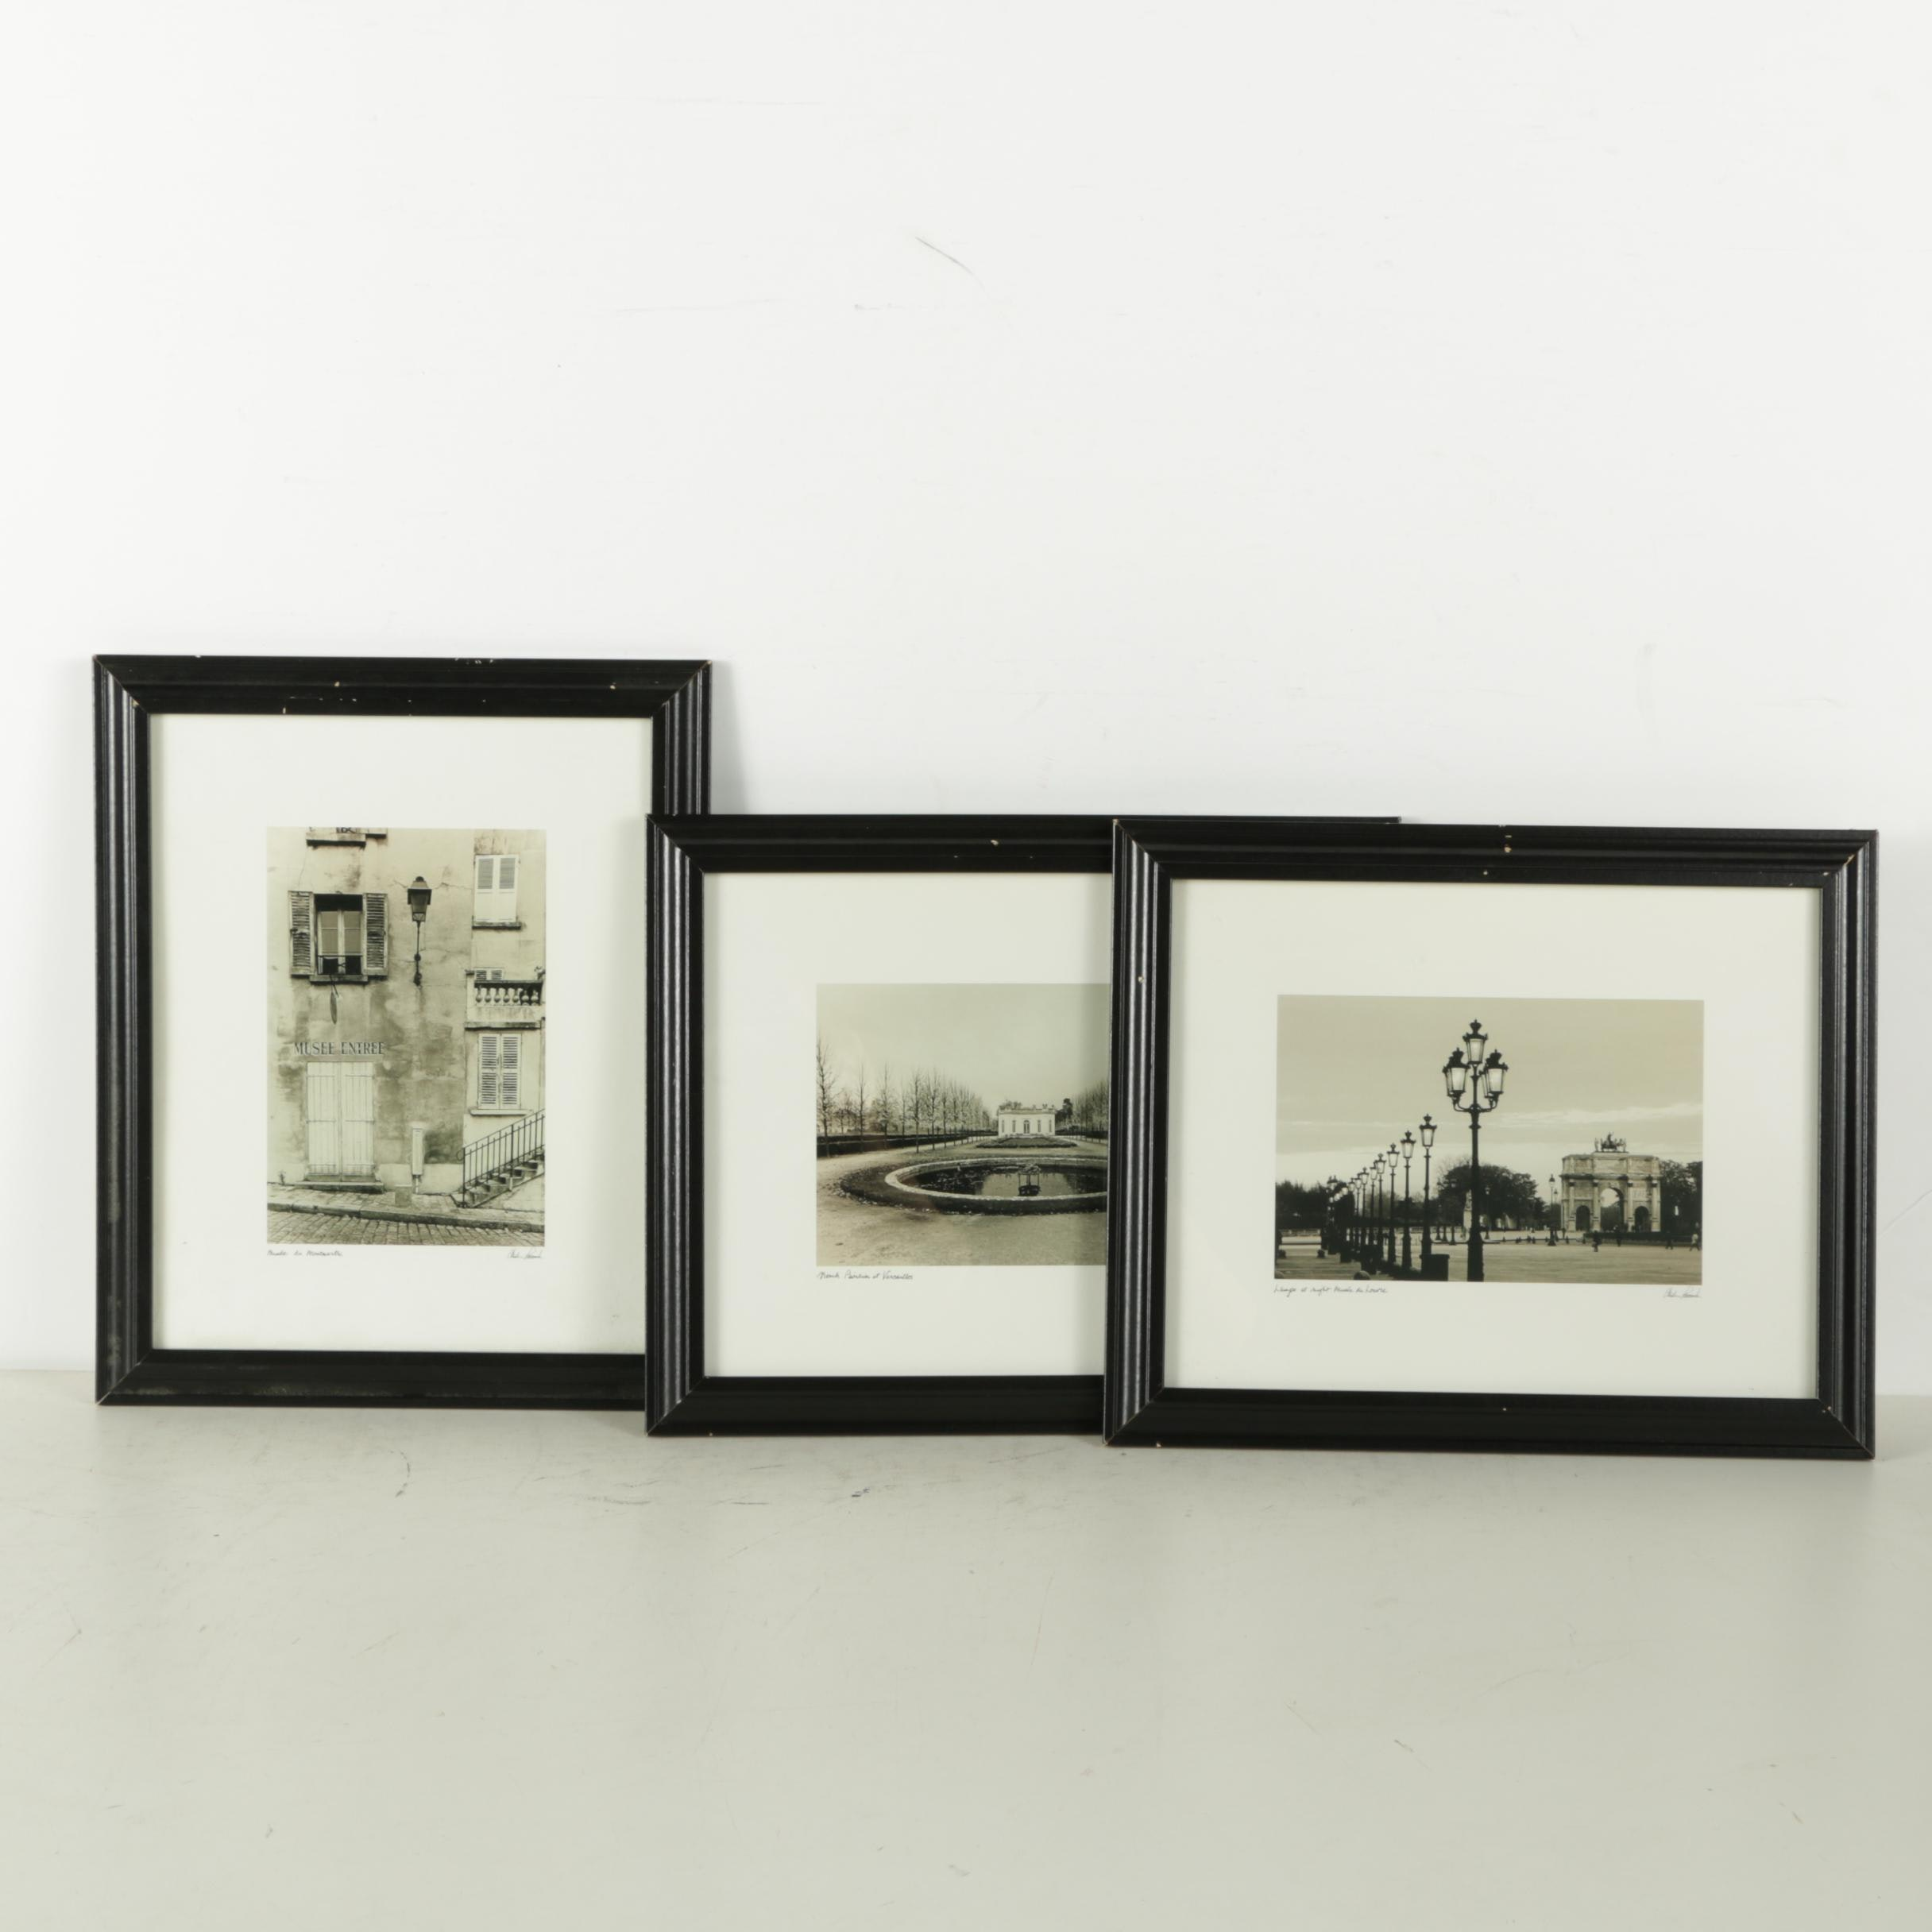 Three Reproduction Prints After Photographs of France